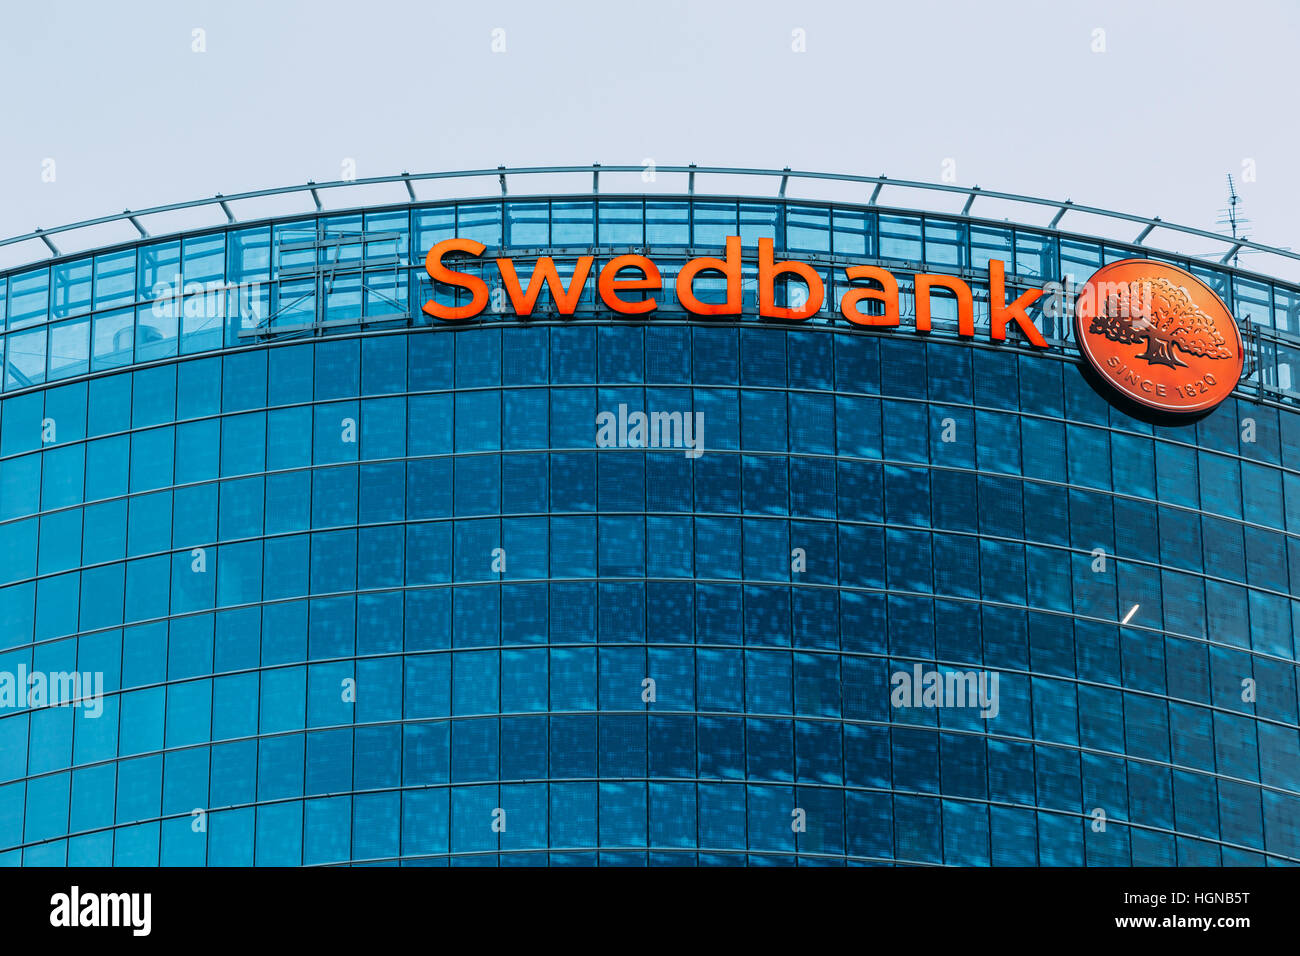 Riga, Latvia - June 30, 2016: Close View Of Blue Glass Building Facade Of Headquarter Of Swedbank With Red Signboard - Stock Image